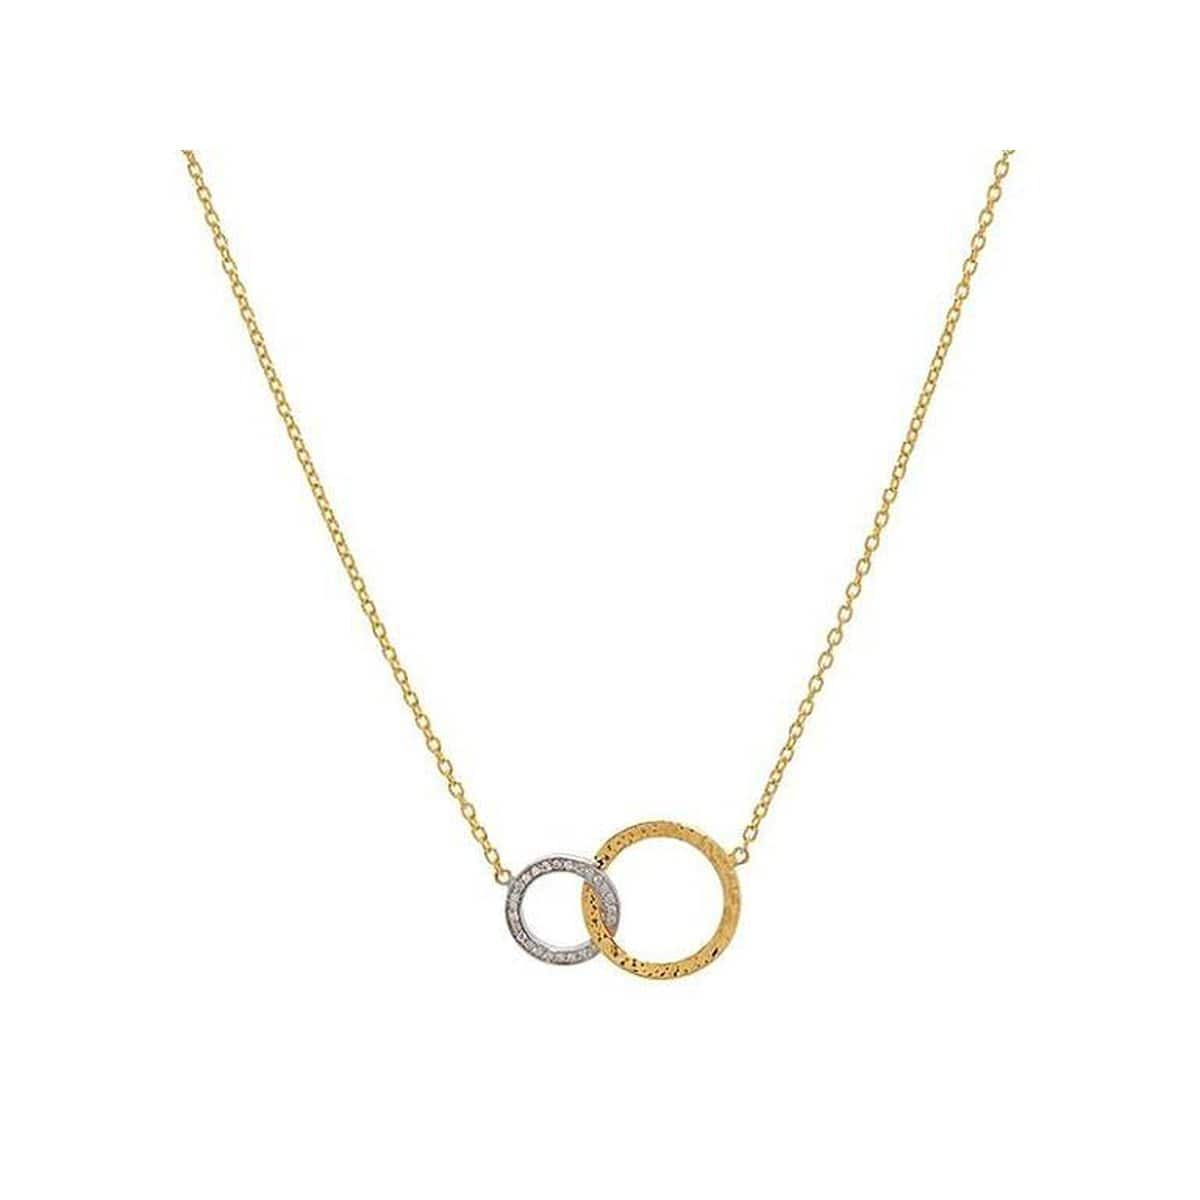 Duet 22K Gold Diamond Necklace - CHN-INT-2RD-H-25DI-GURHAN-Renee Taylor Gallery